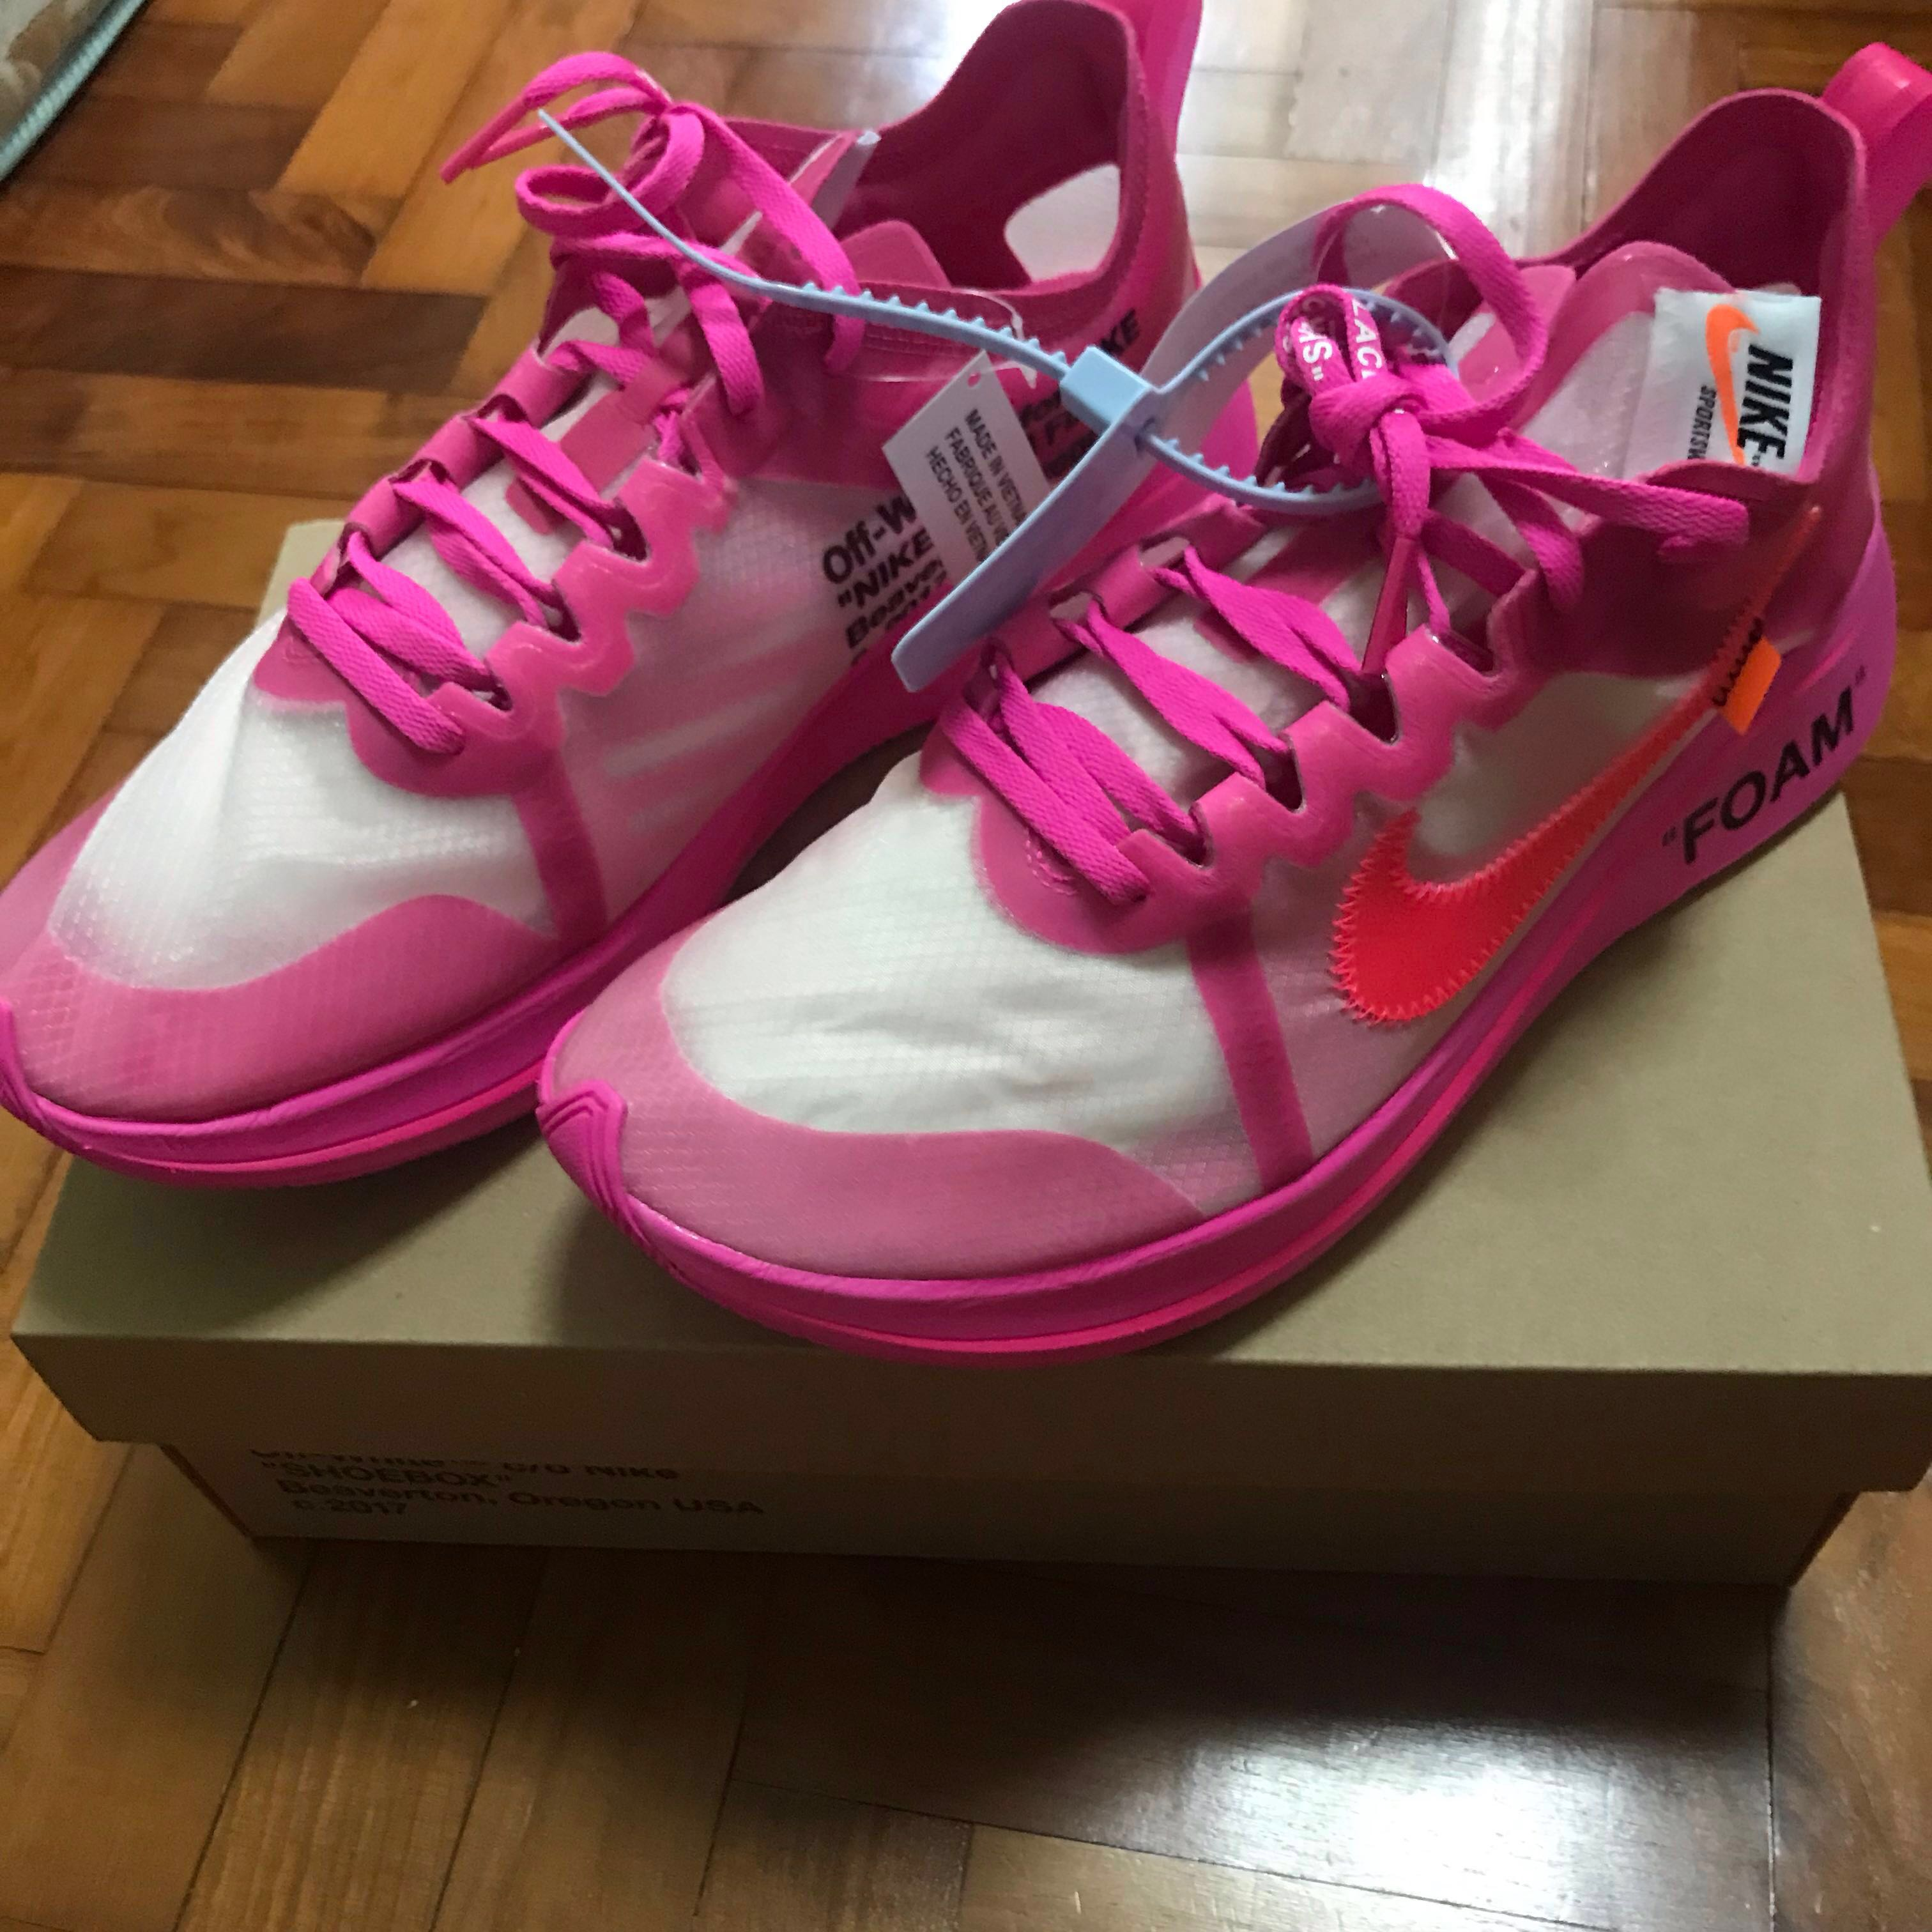 ccf5cdaaeb94 Off-White X Nike Zoomfly Tulip Pink